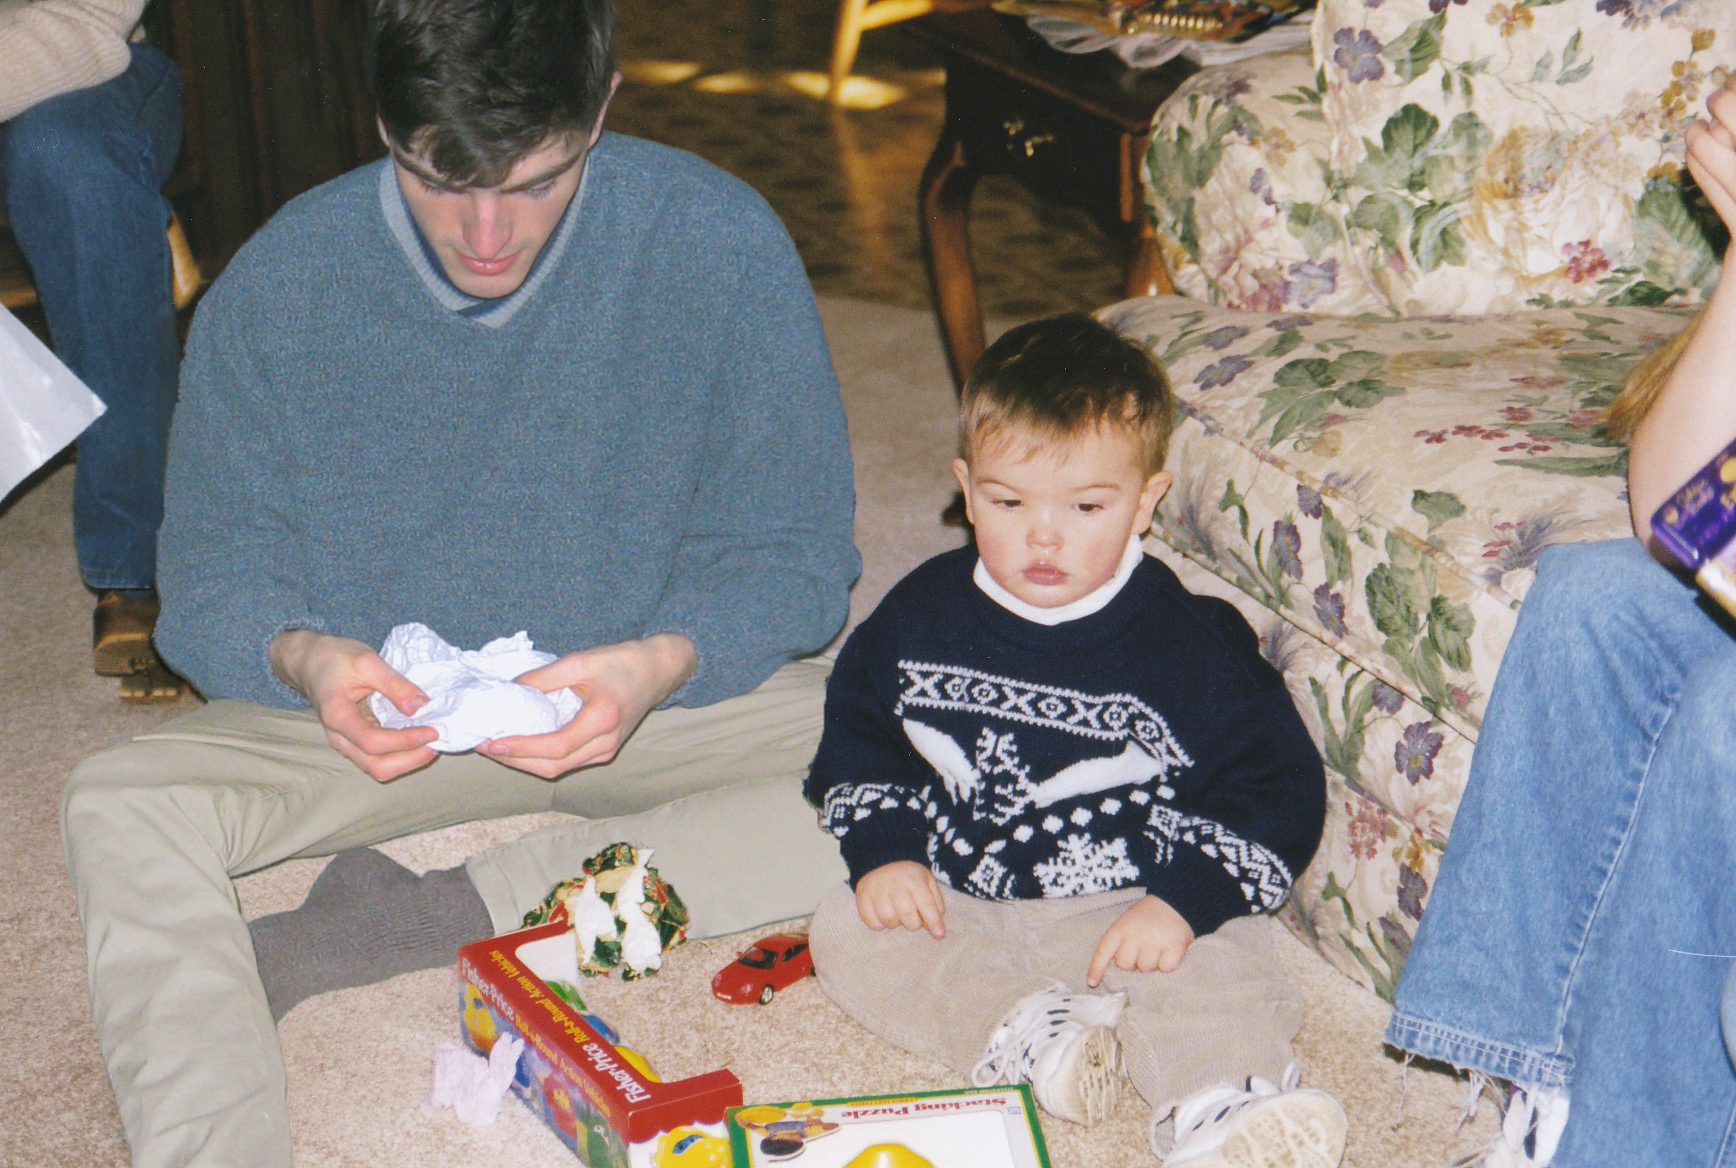 Conor and his younger self opening presents